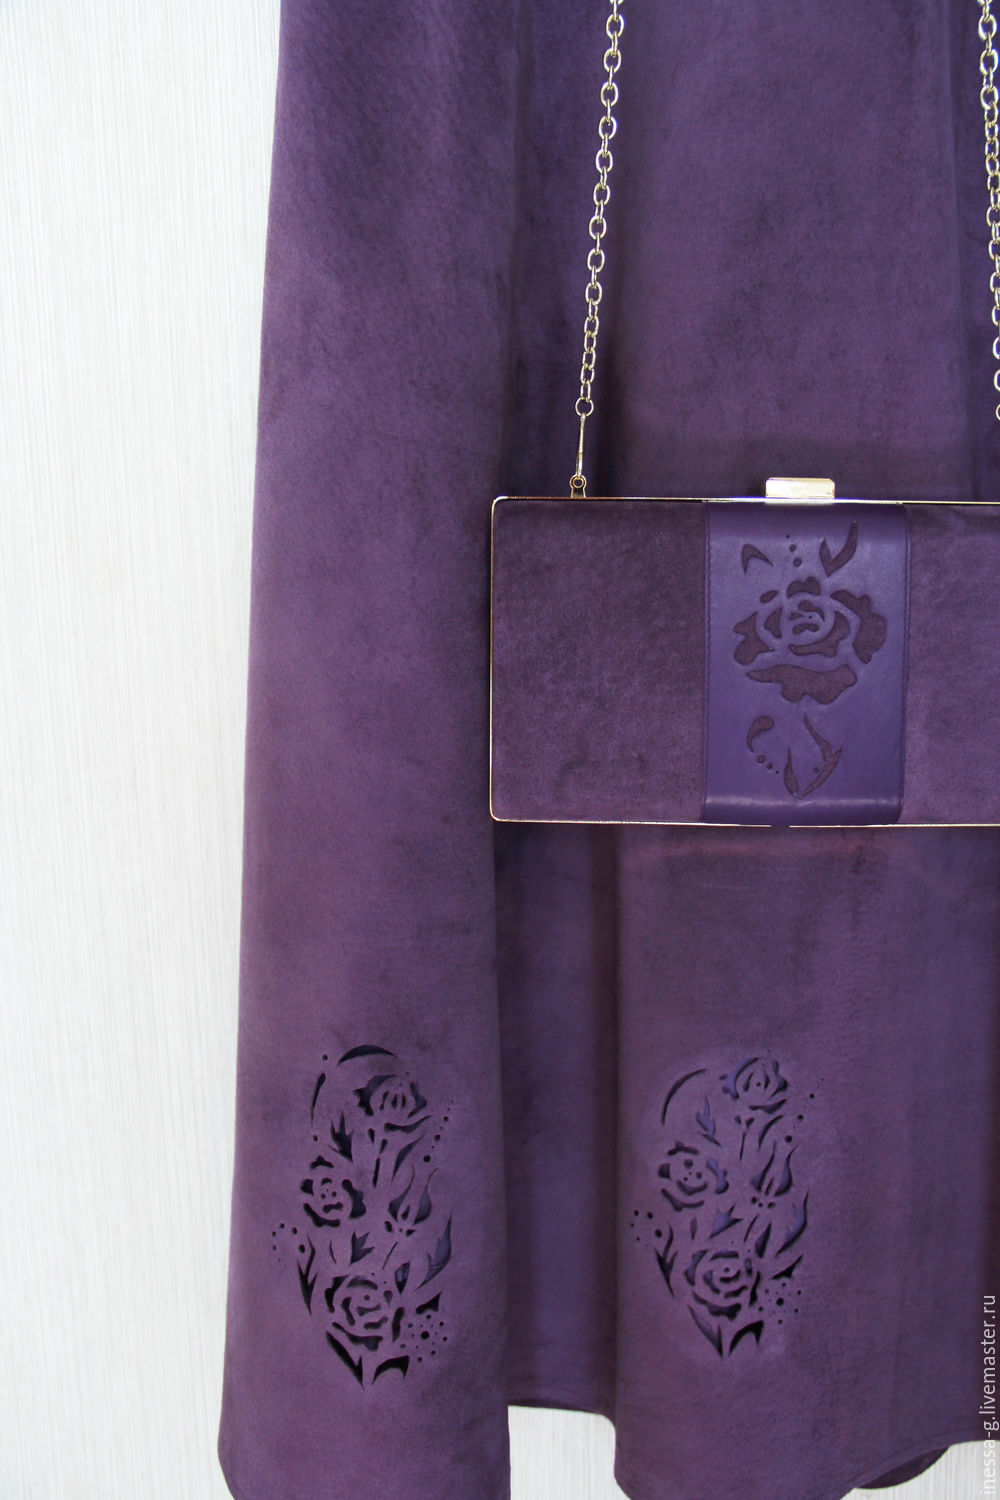 Suit and clutch bag suede amethyst color, Suits, Moscow,  Фото №1